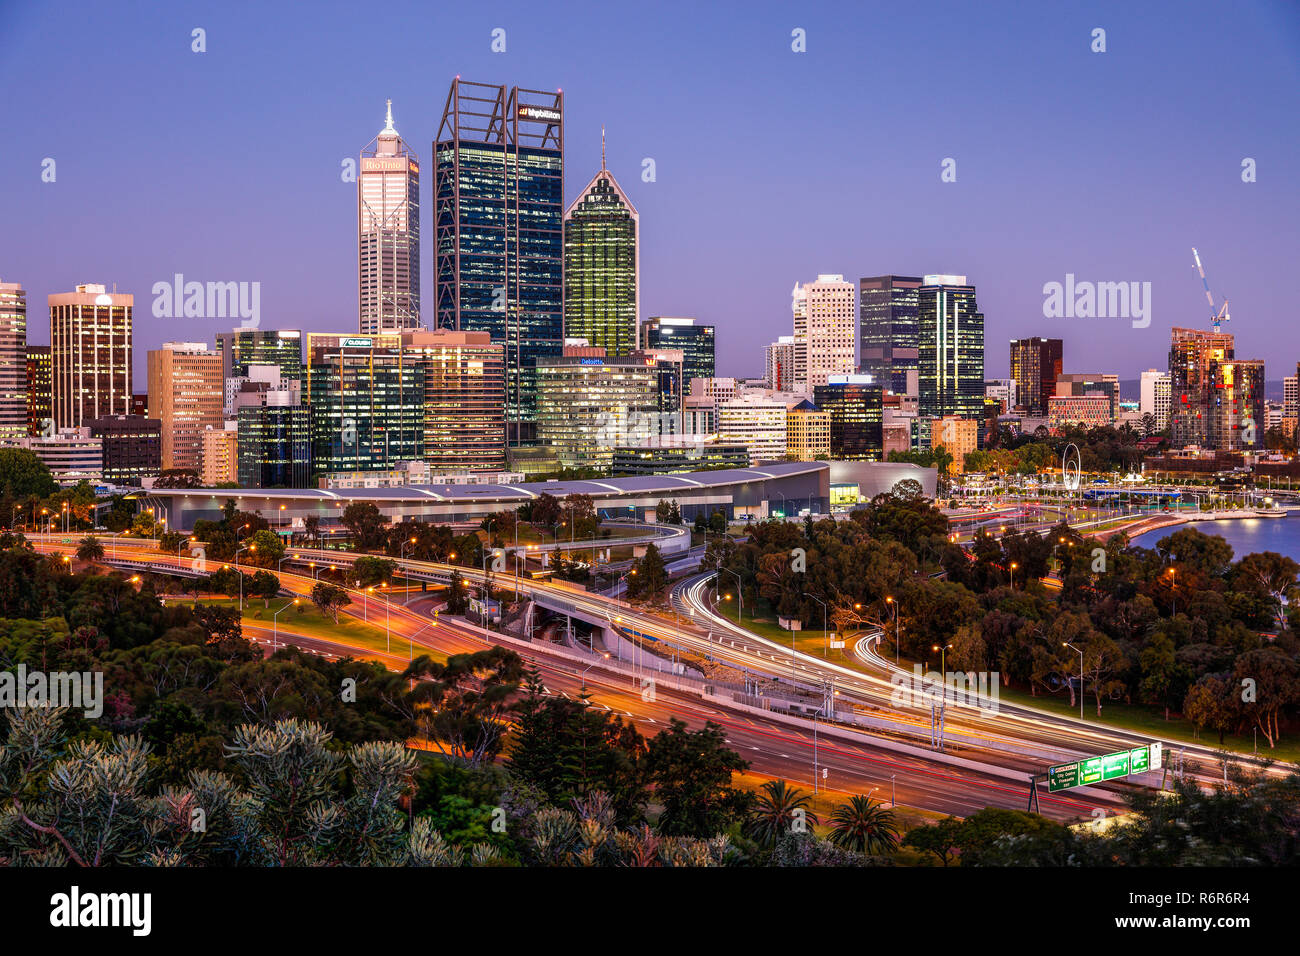 Perth CBD as seen from Frasers Avenue, Kings Park & Botanical Gardens. - Stock Image